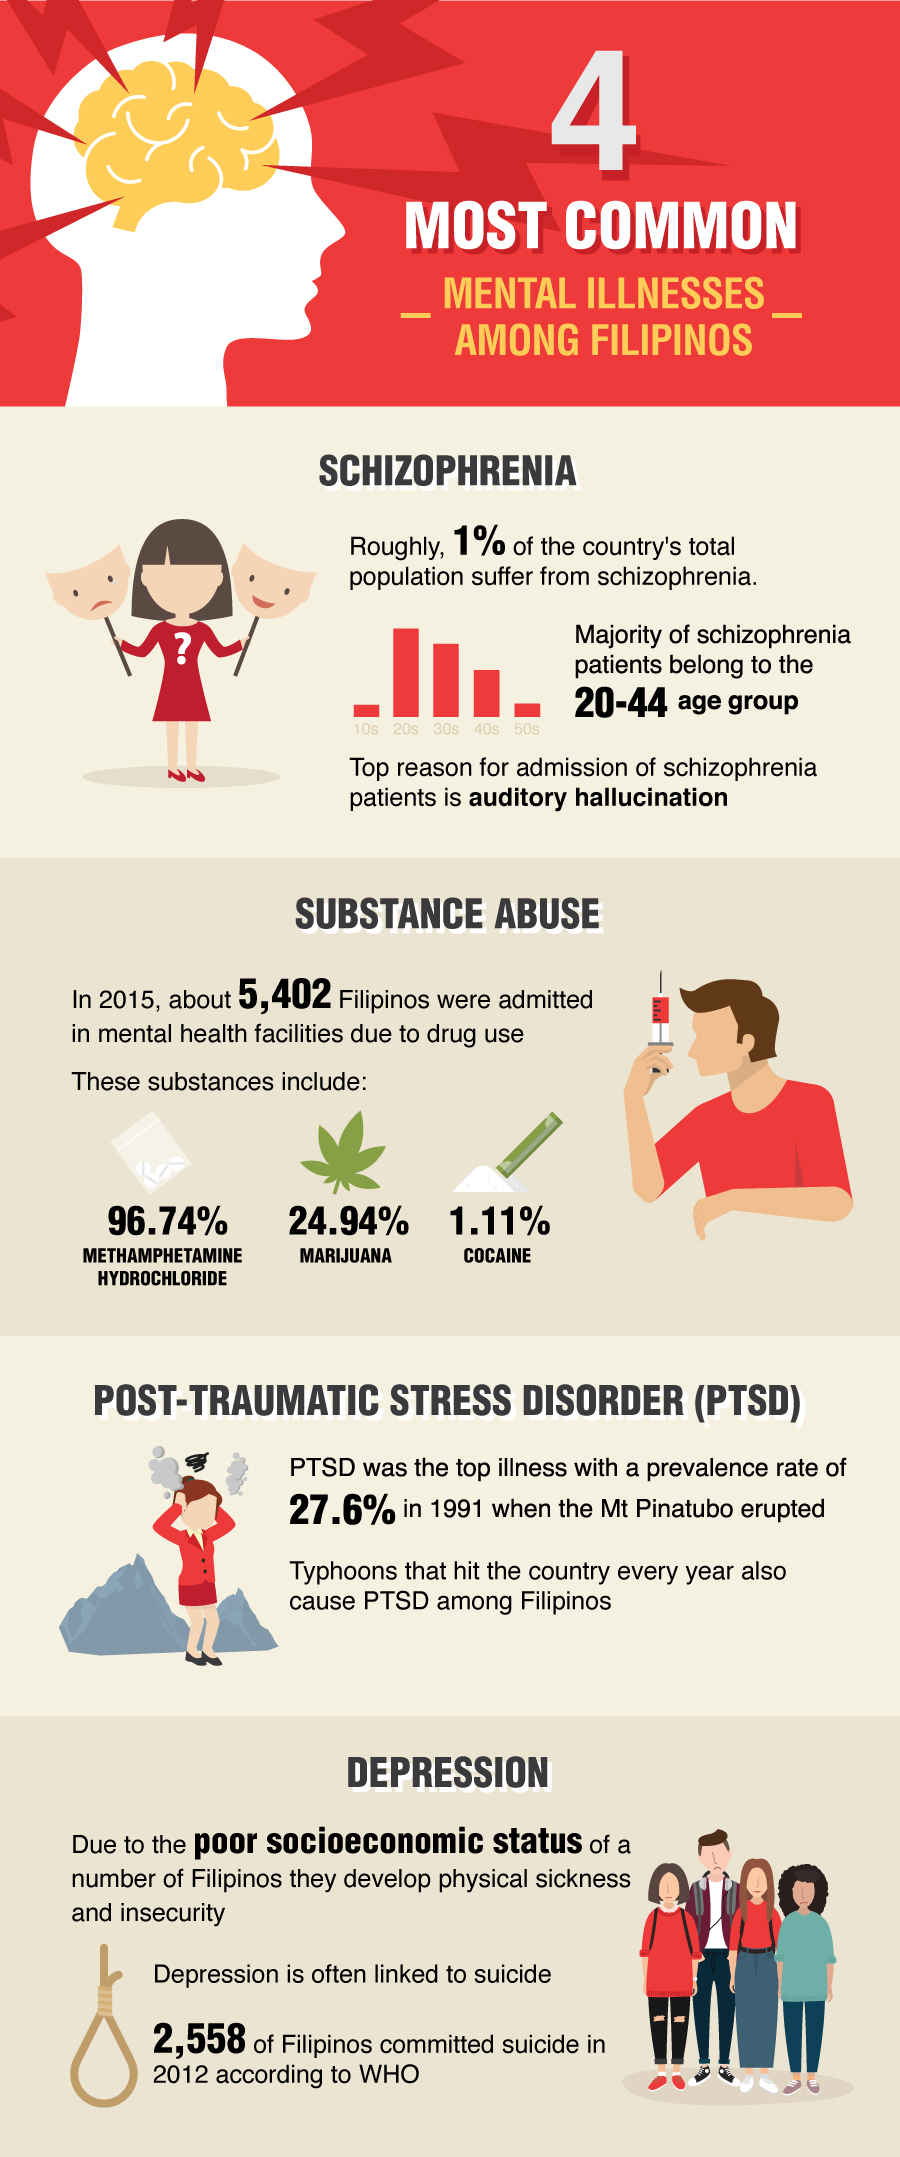 The 4 most common mental illnesses among Filipinos